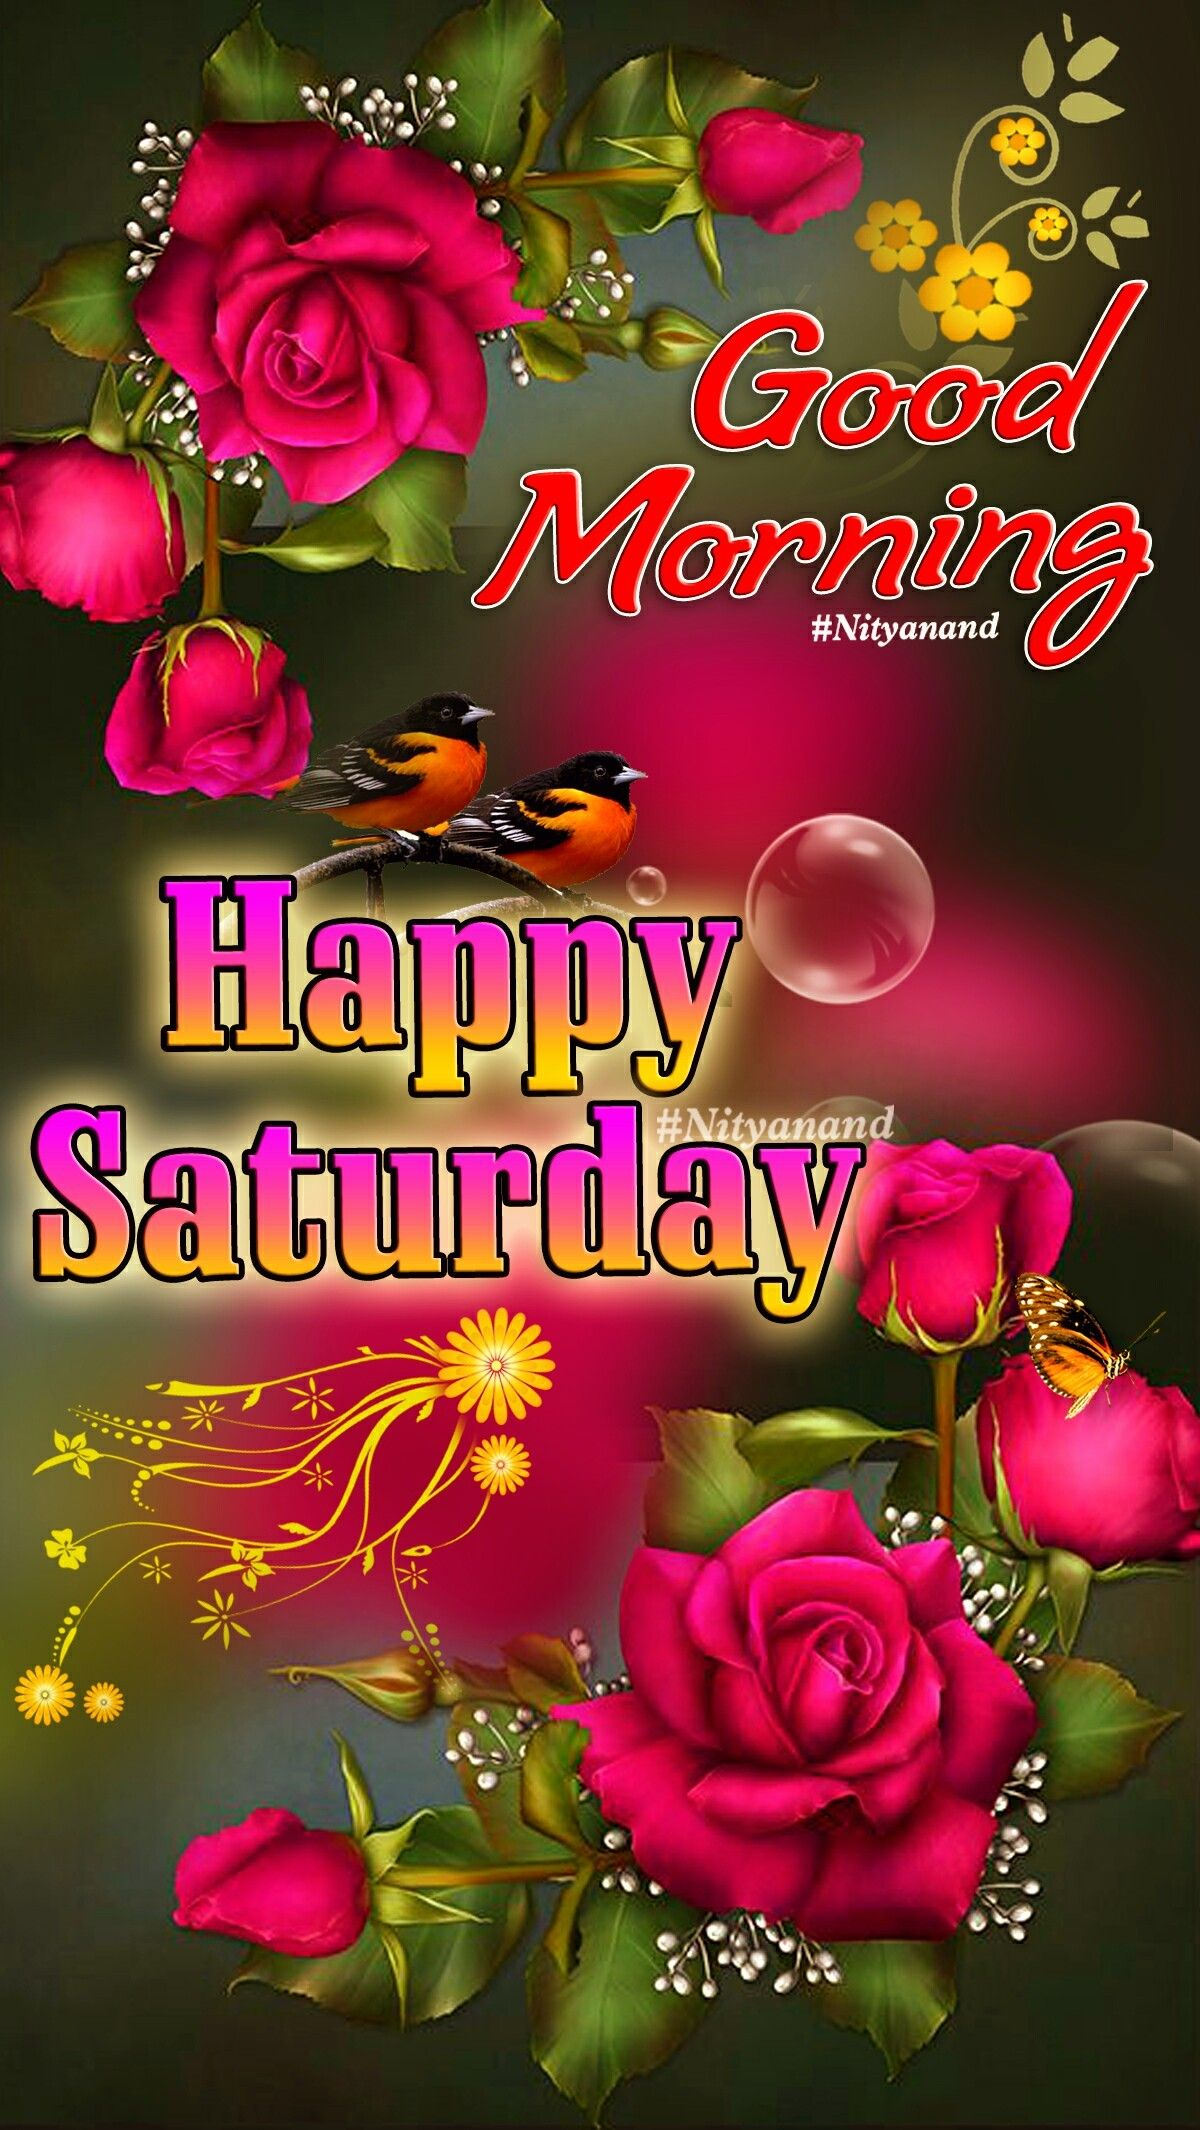 Happy Saturday Good Morning Friends Pictures, Photos, and ... |Good Morning Happy Saturday Friends